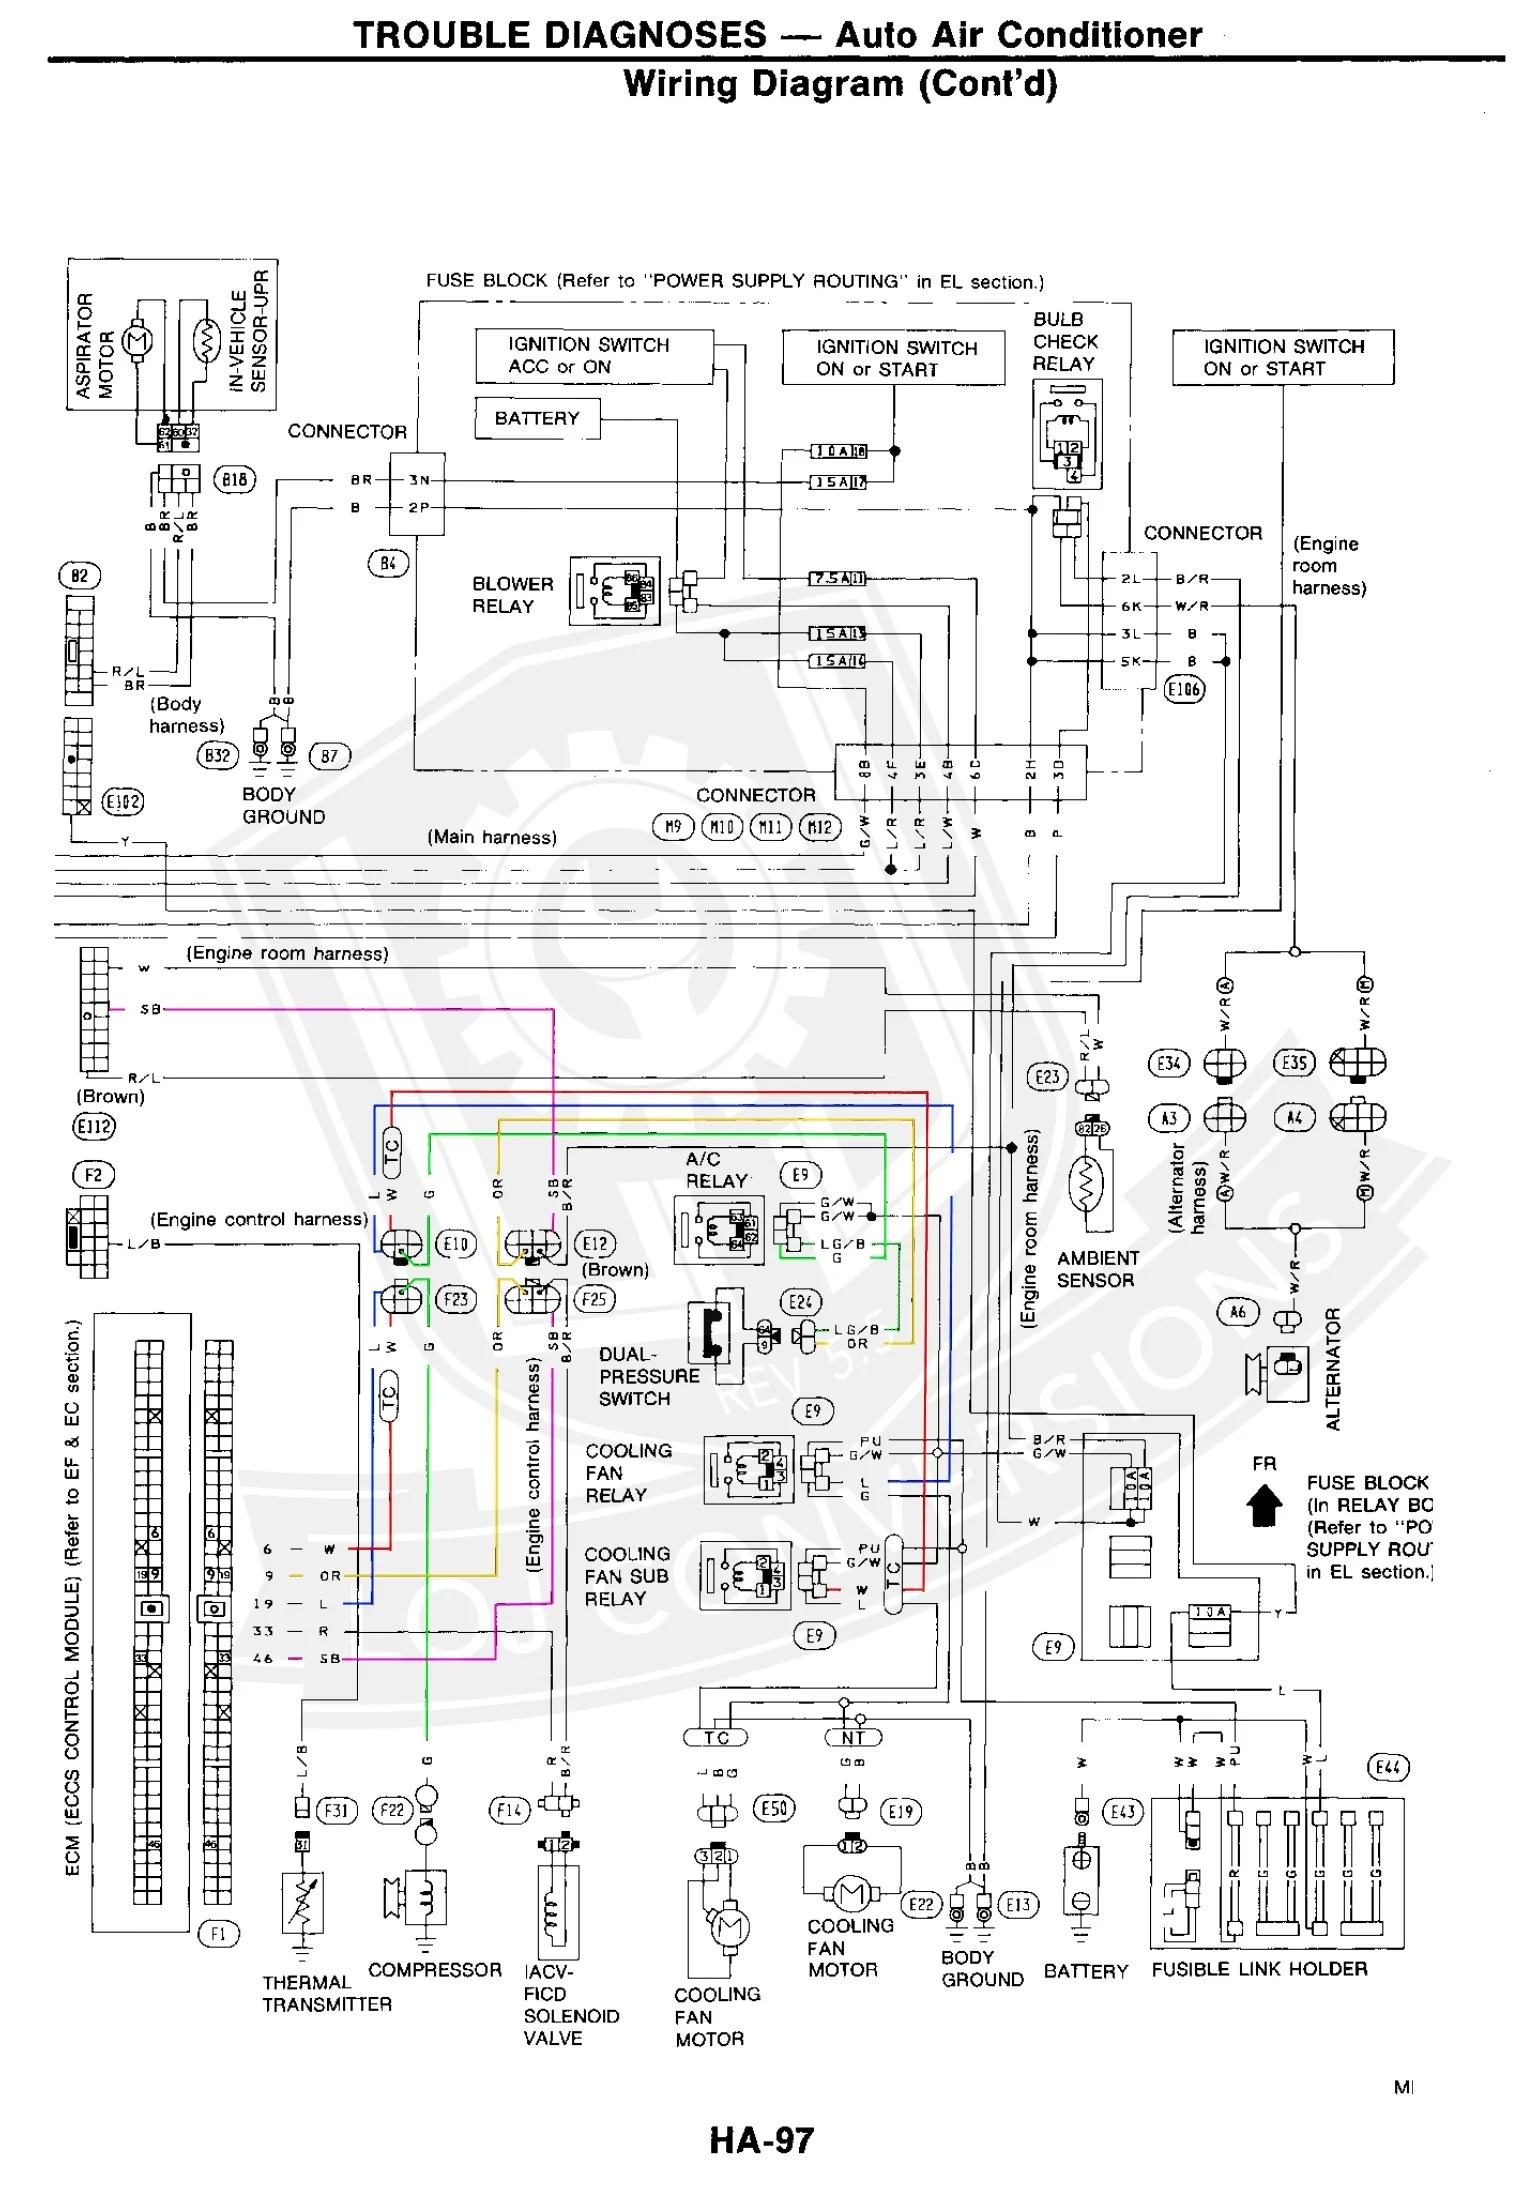 ac wiring diagram ls swap wiring diagram list ac wiring diagram ls swap [ 1515 x 2194 Pixel ]